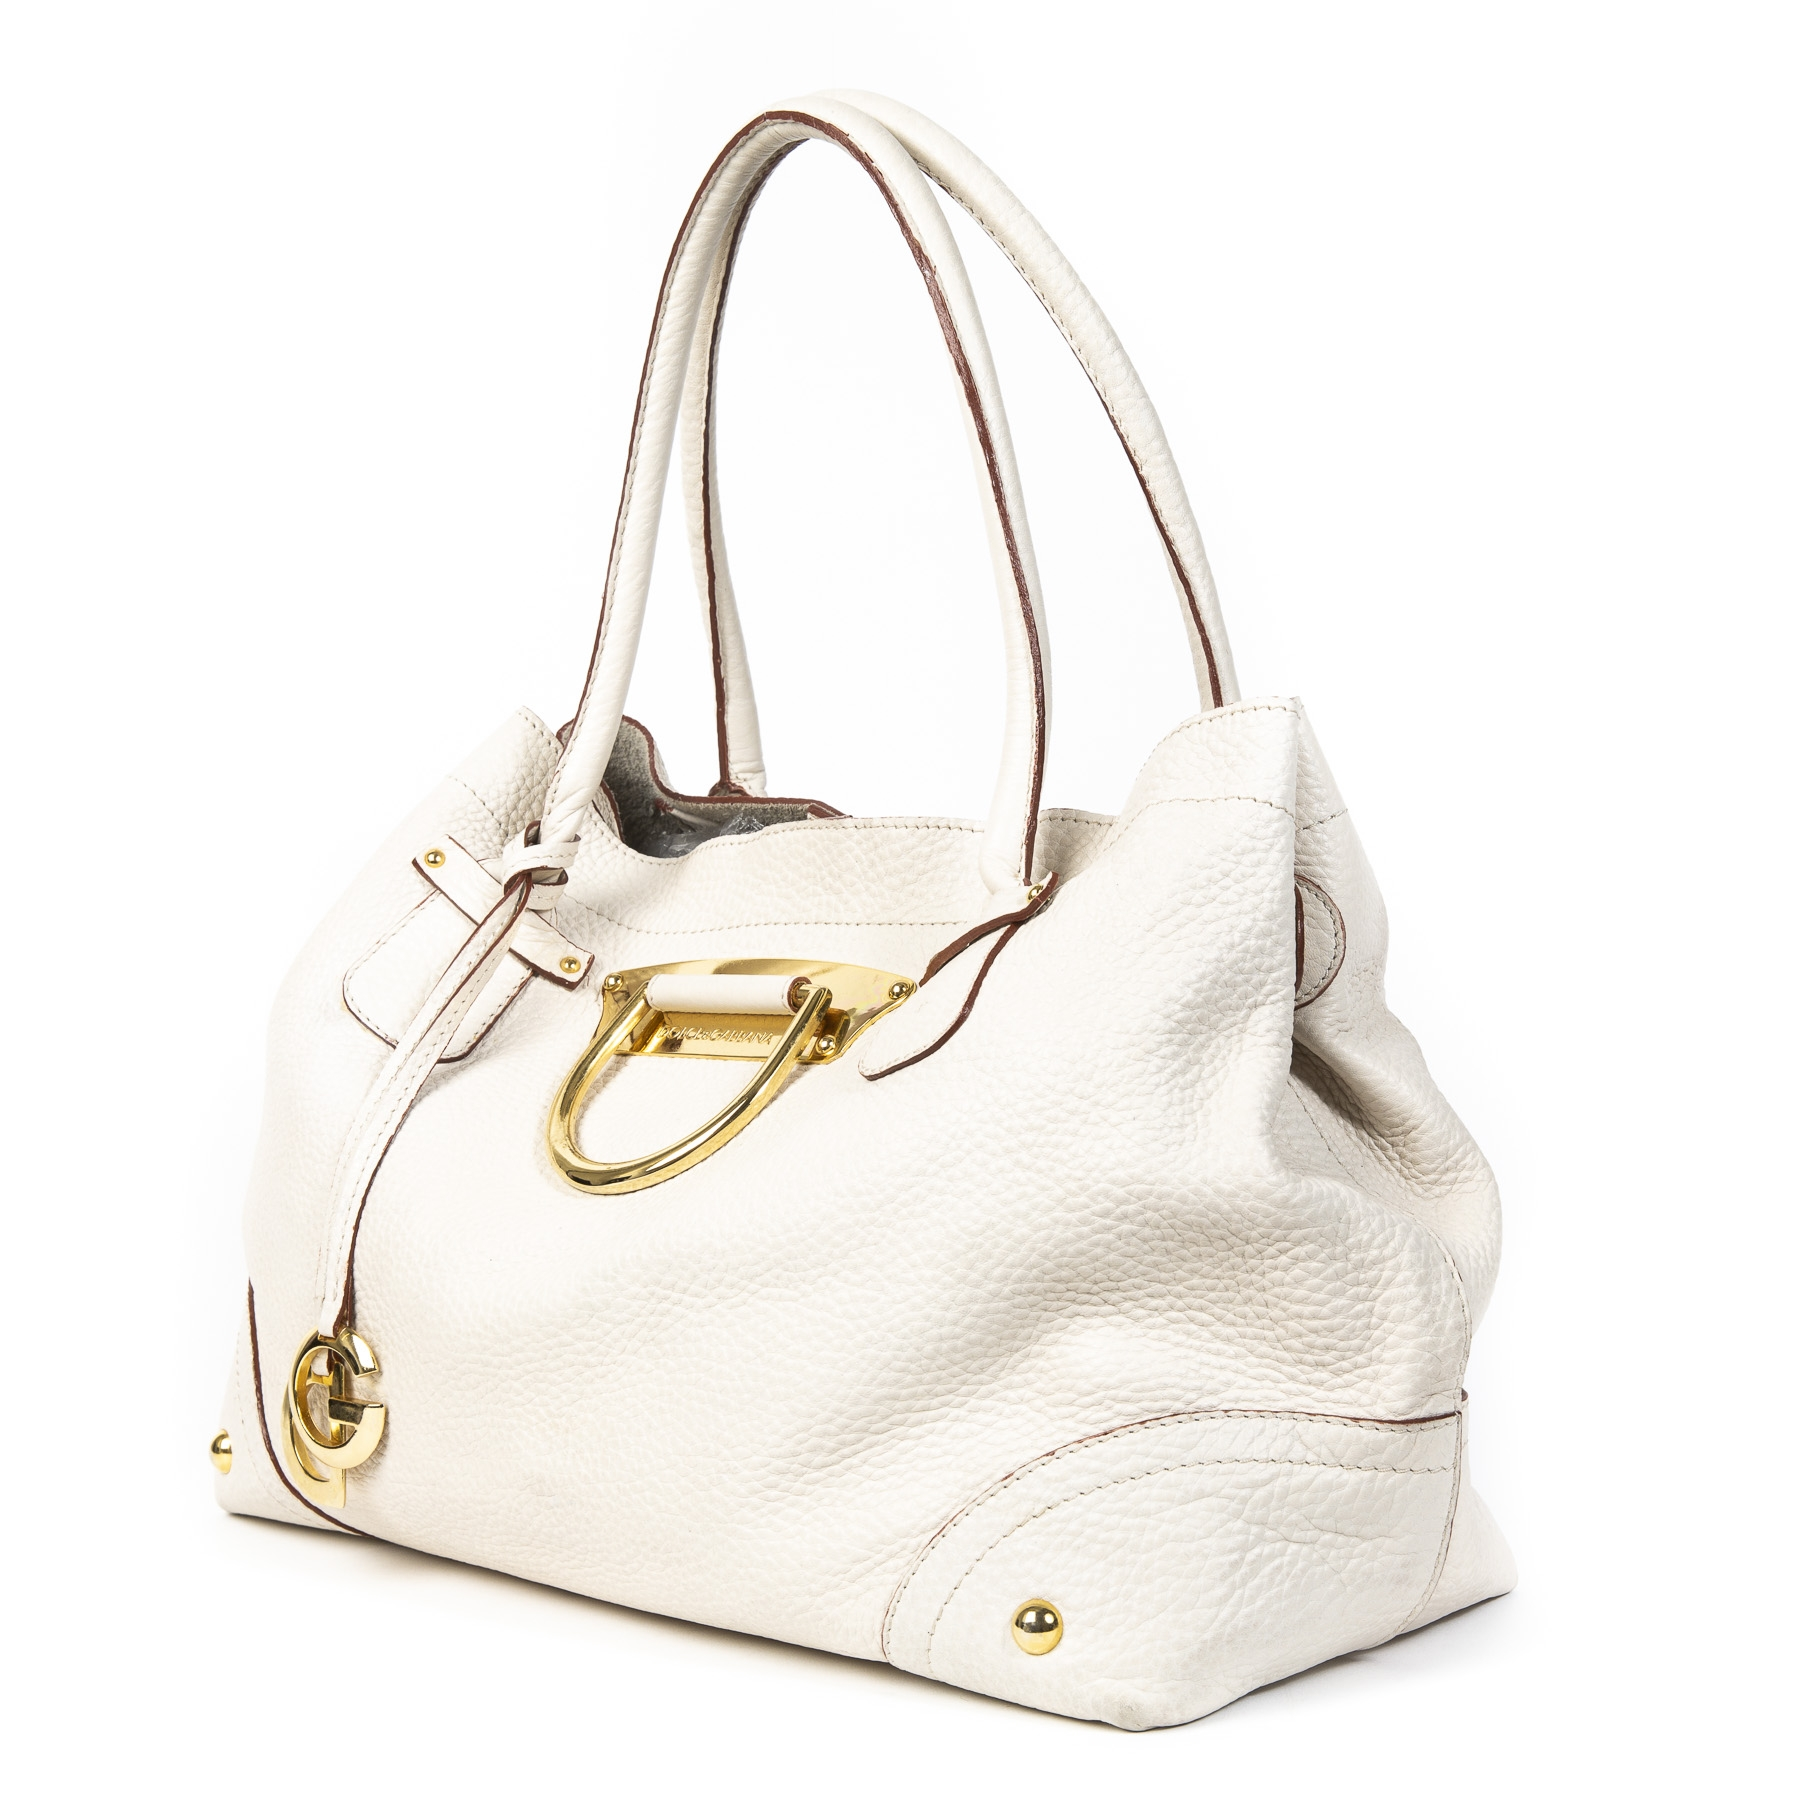 Authentieke tweedehands vintage Dolce & Gabbana White Leather D-Ring Shoulder Bag koop online webshop LabelLOV